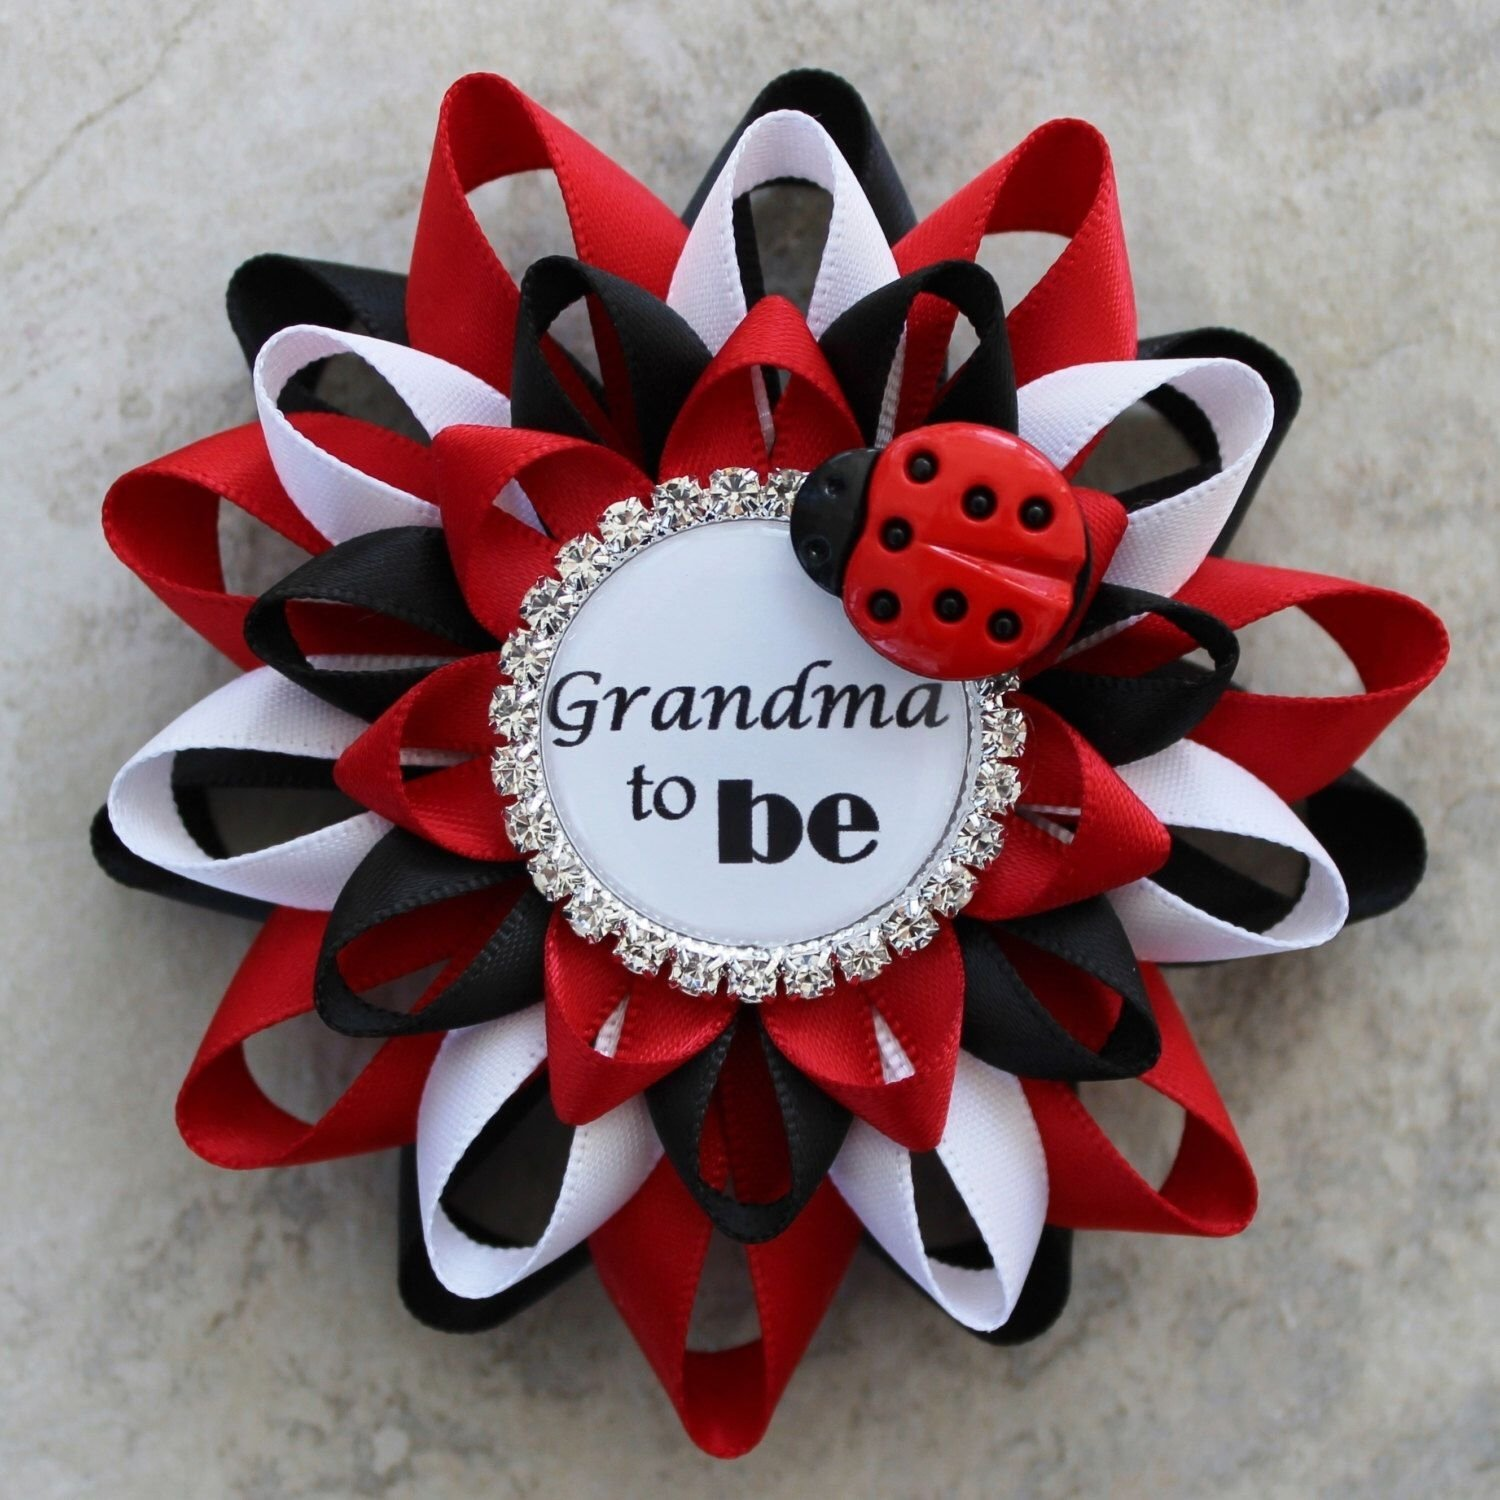 10 Attractive Lady Bug Baby Shower Ideas ladybug baby shower corsages ladybug birthday ladybug baby shower